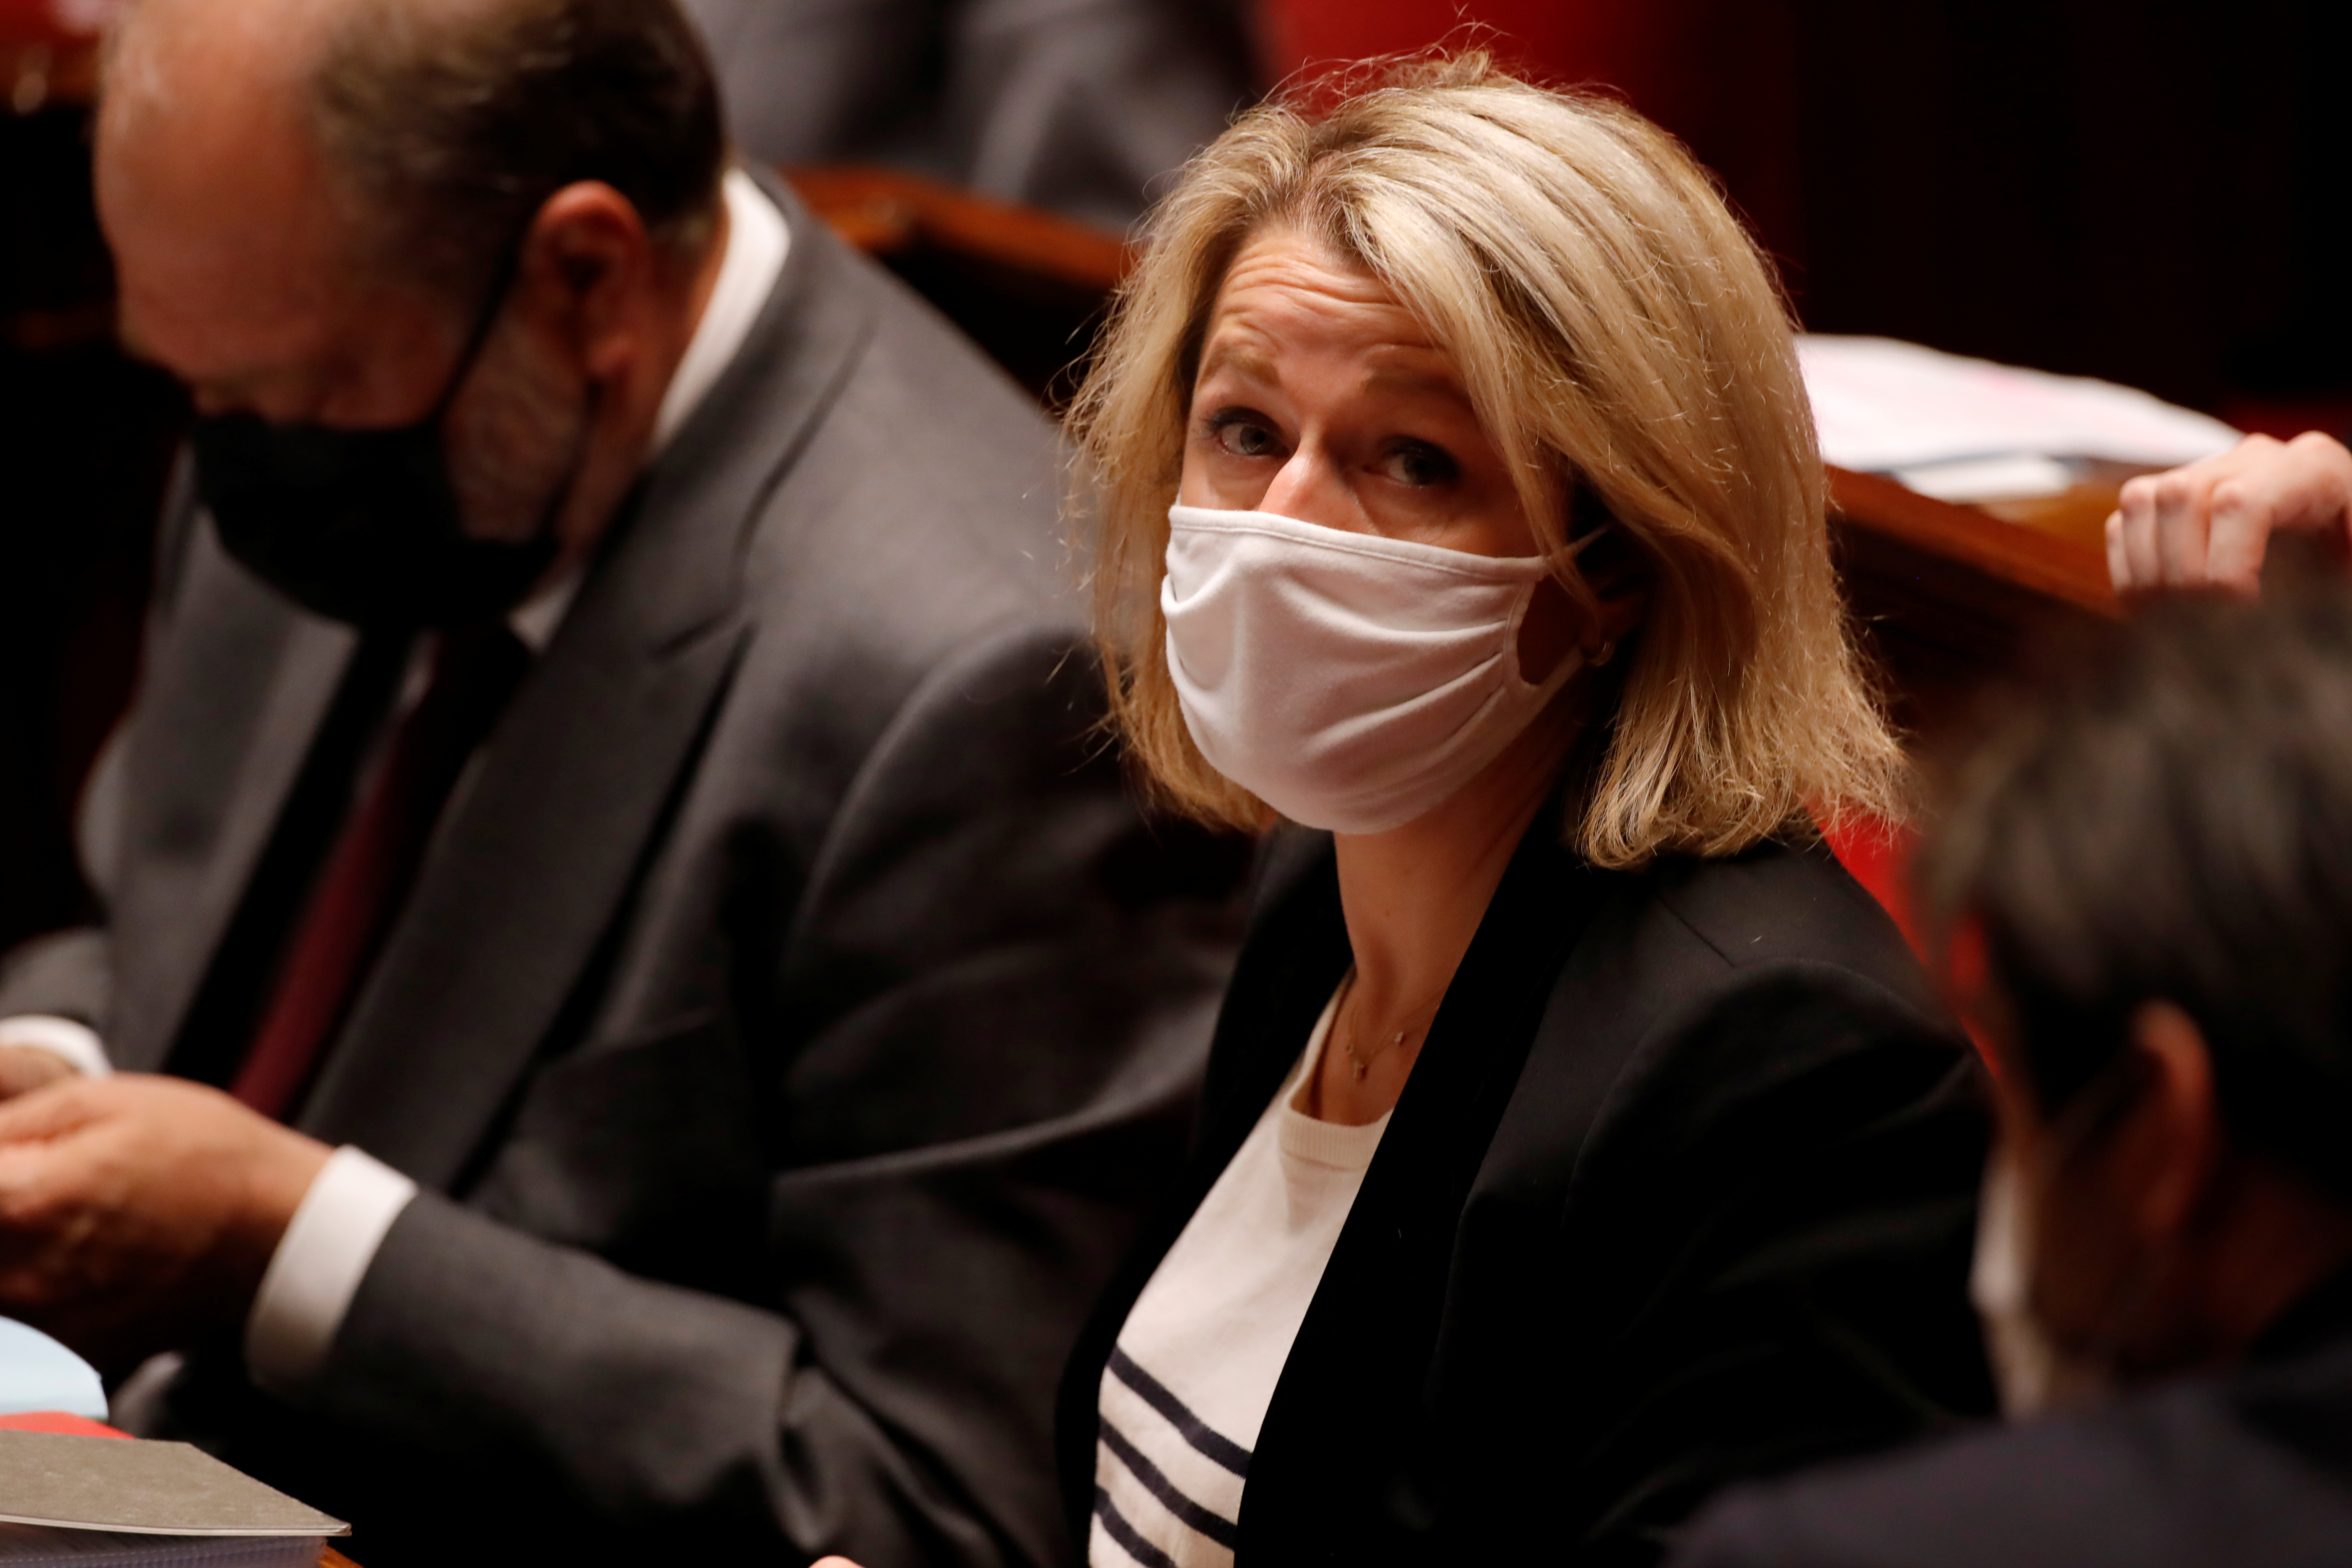 French Ecological Transition Minister Barbara Pompili, wearing a protective face mask, attends the questions to the government session before a final vote on controversial climate change bill at the National Assembly in Paris, France, May 4, 2021. REUTERS/Sarah Meyssonnier